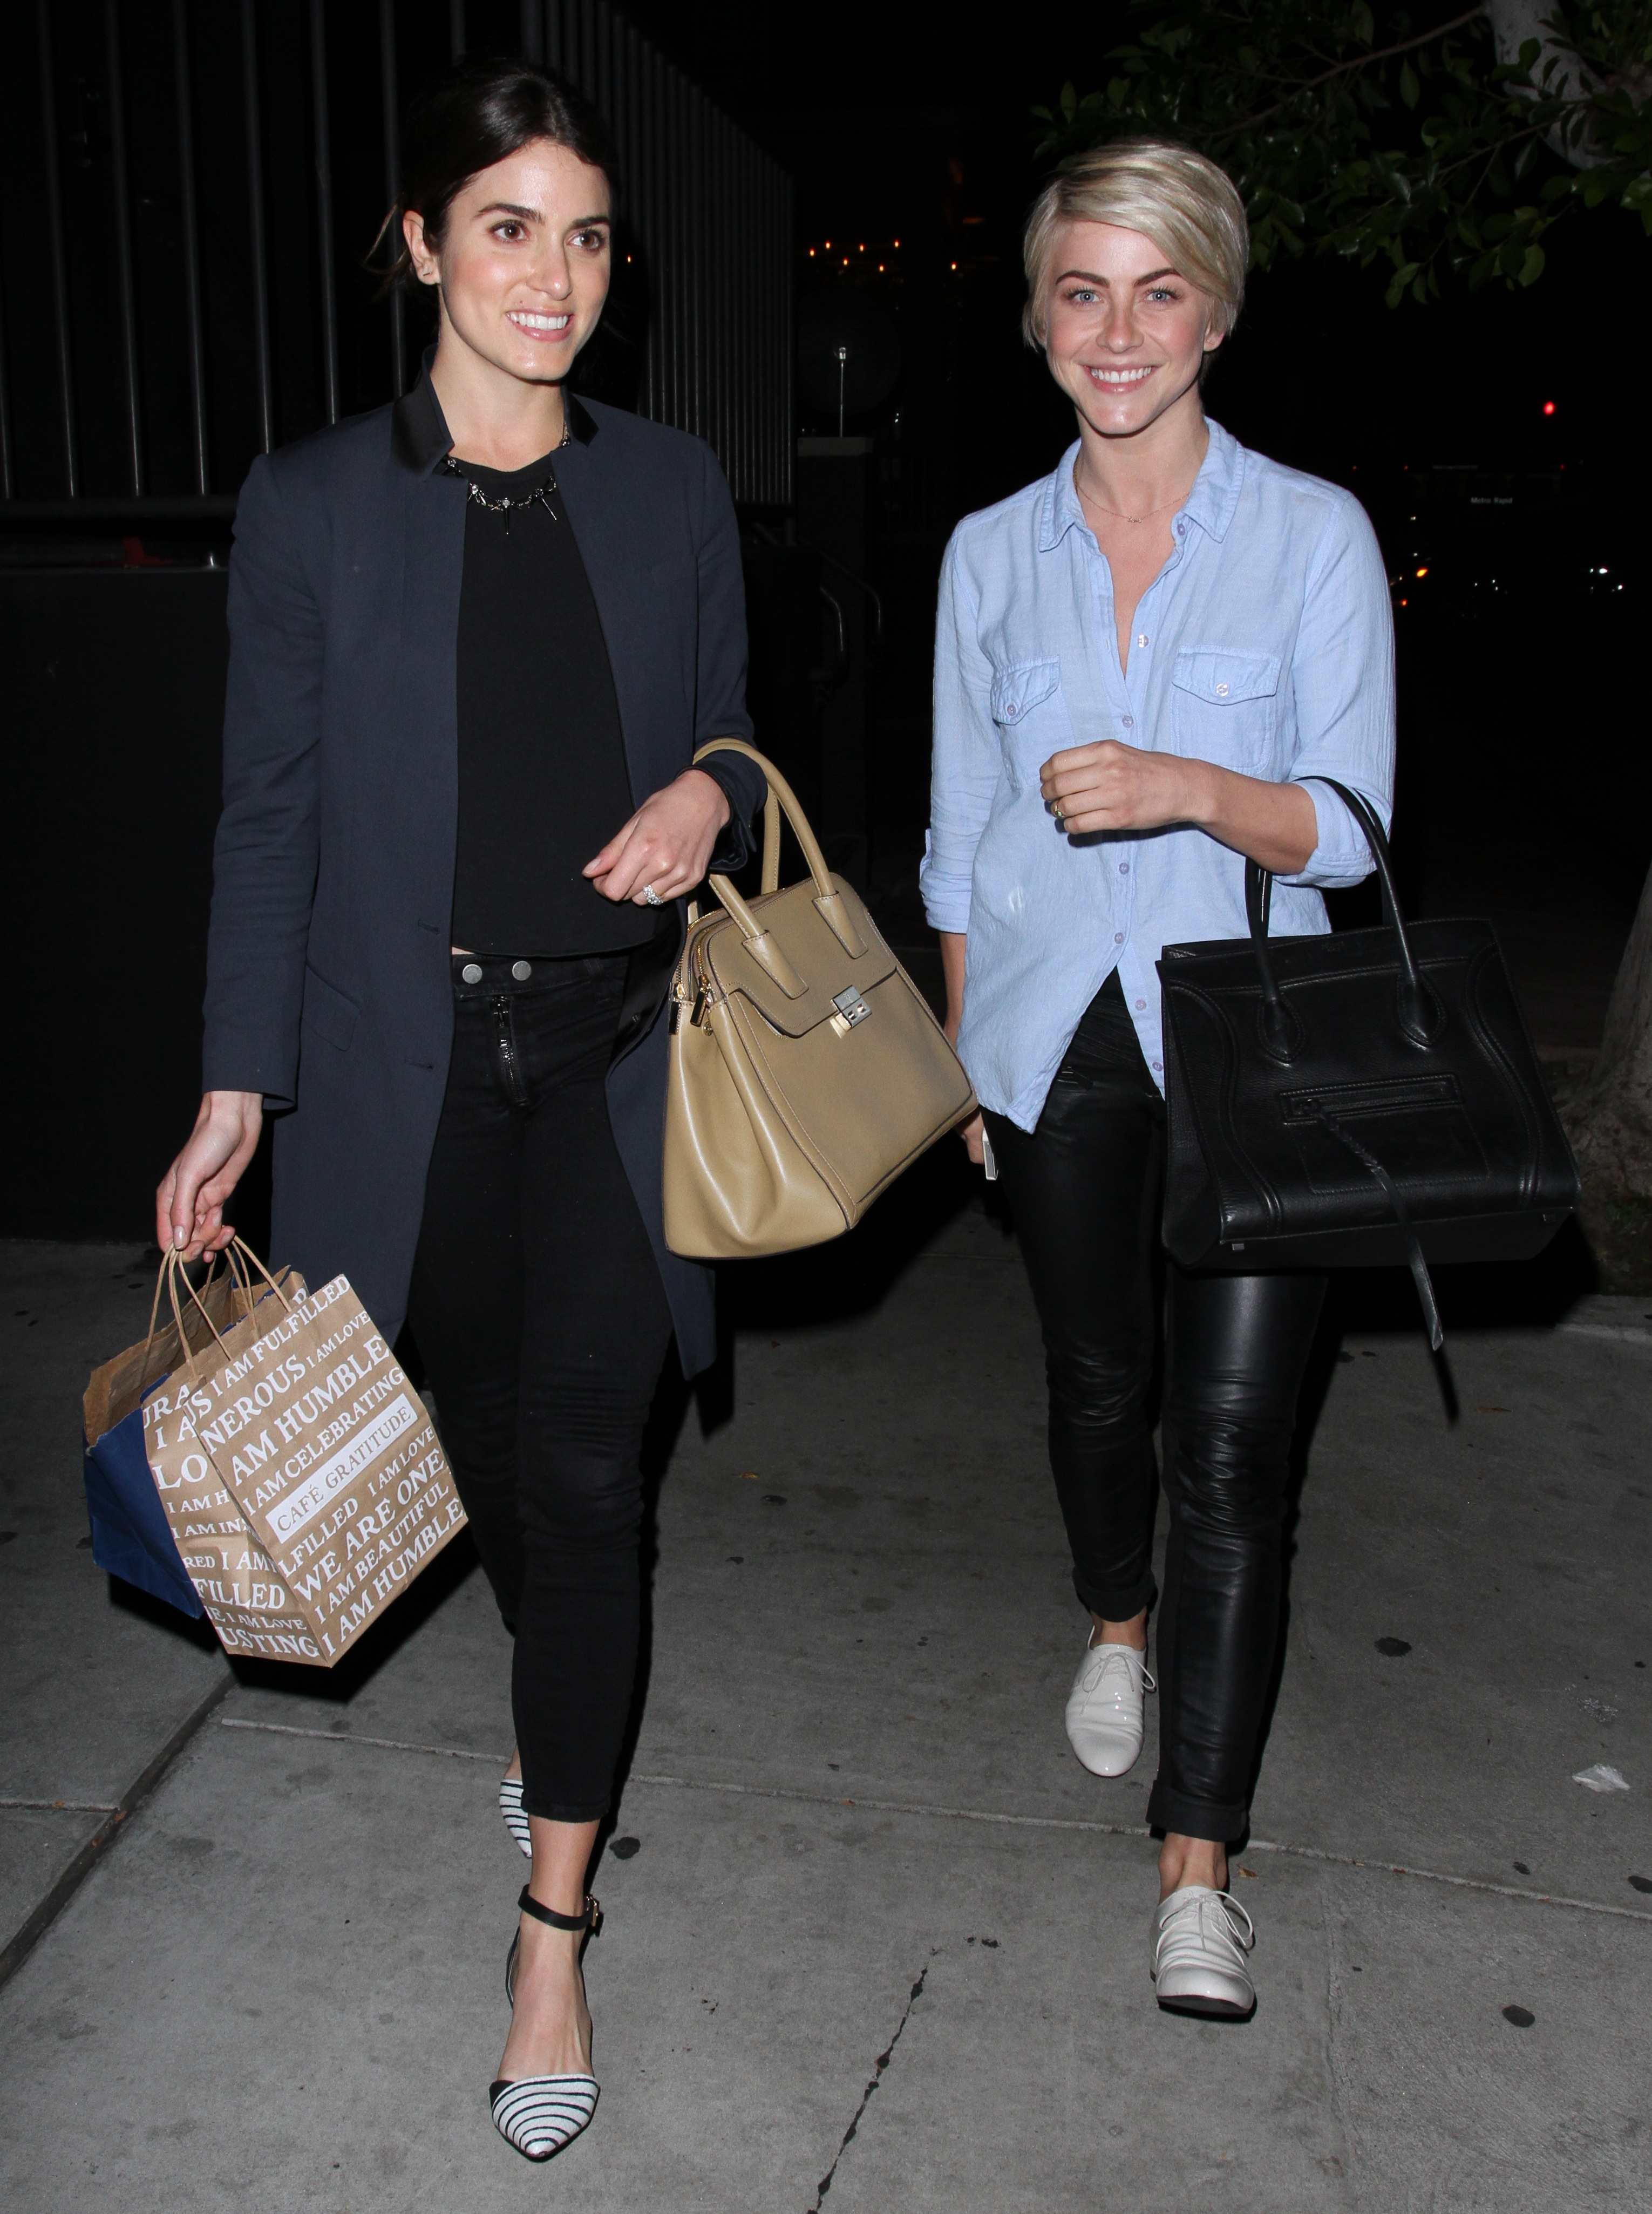 Julianne Hough Leaving the Gratitude Cafe